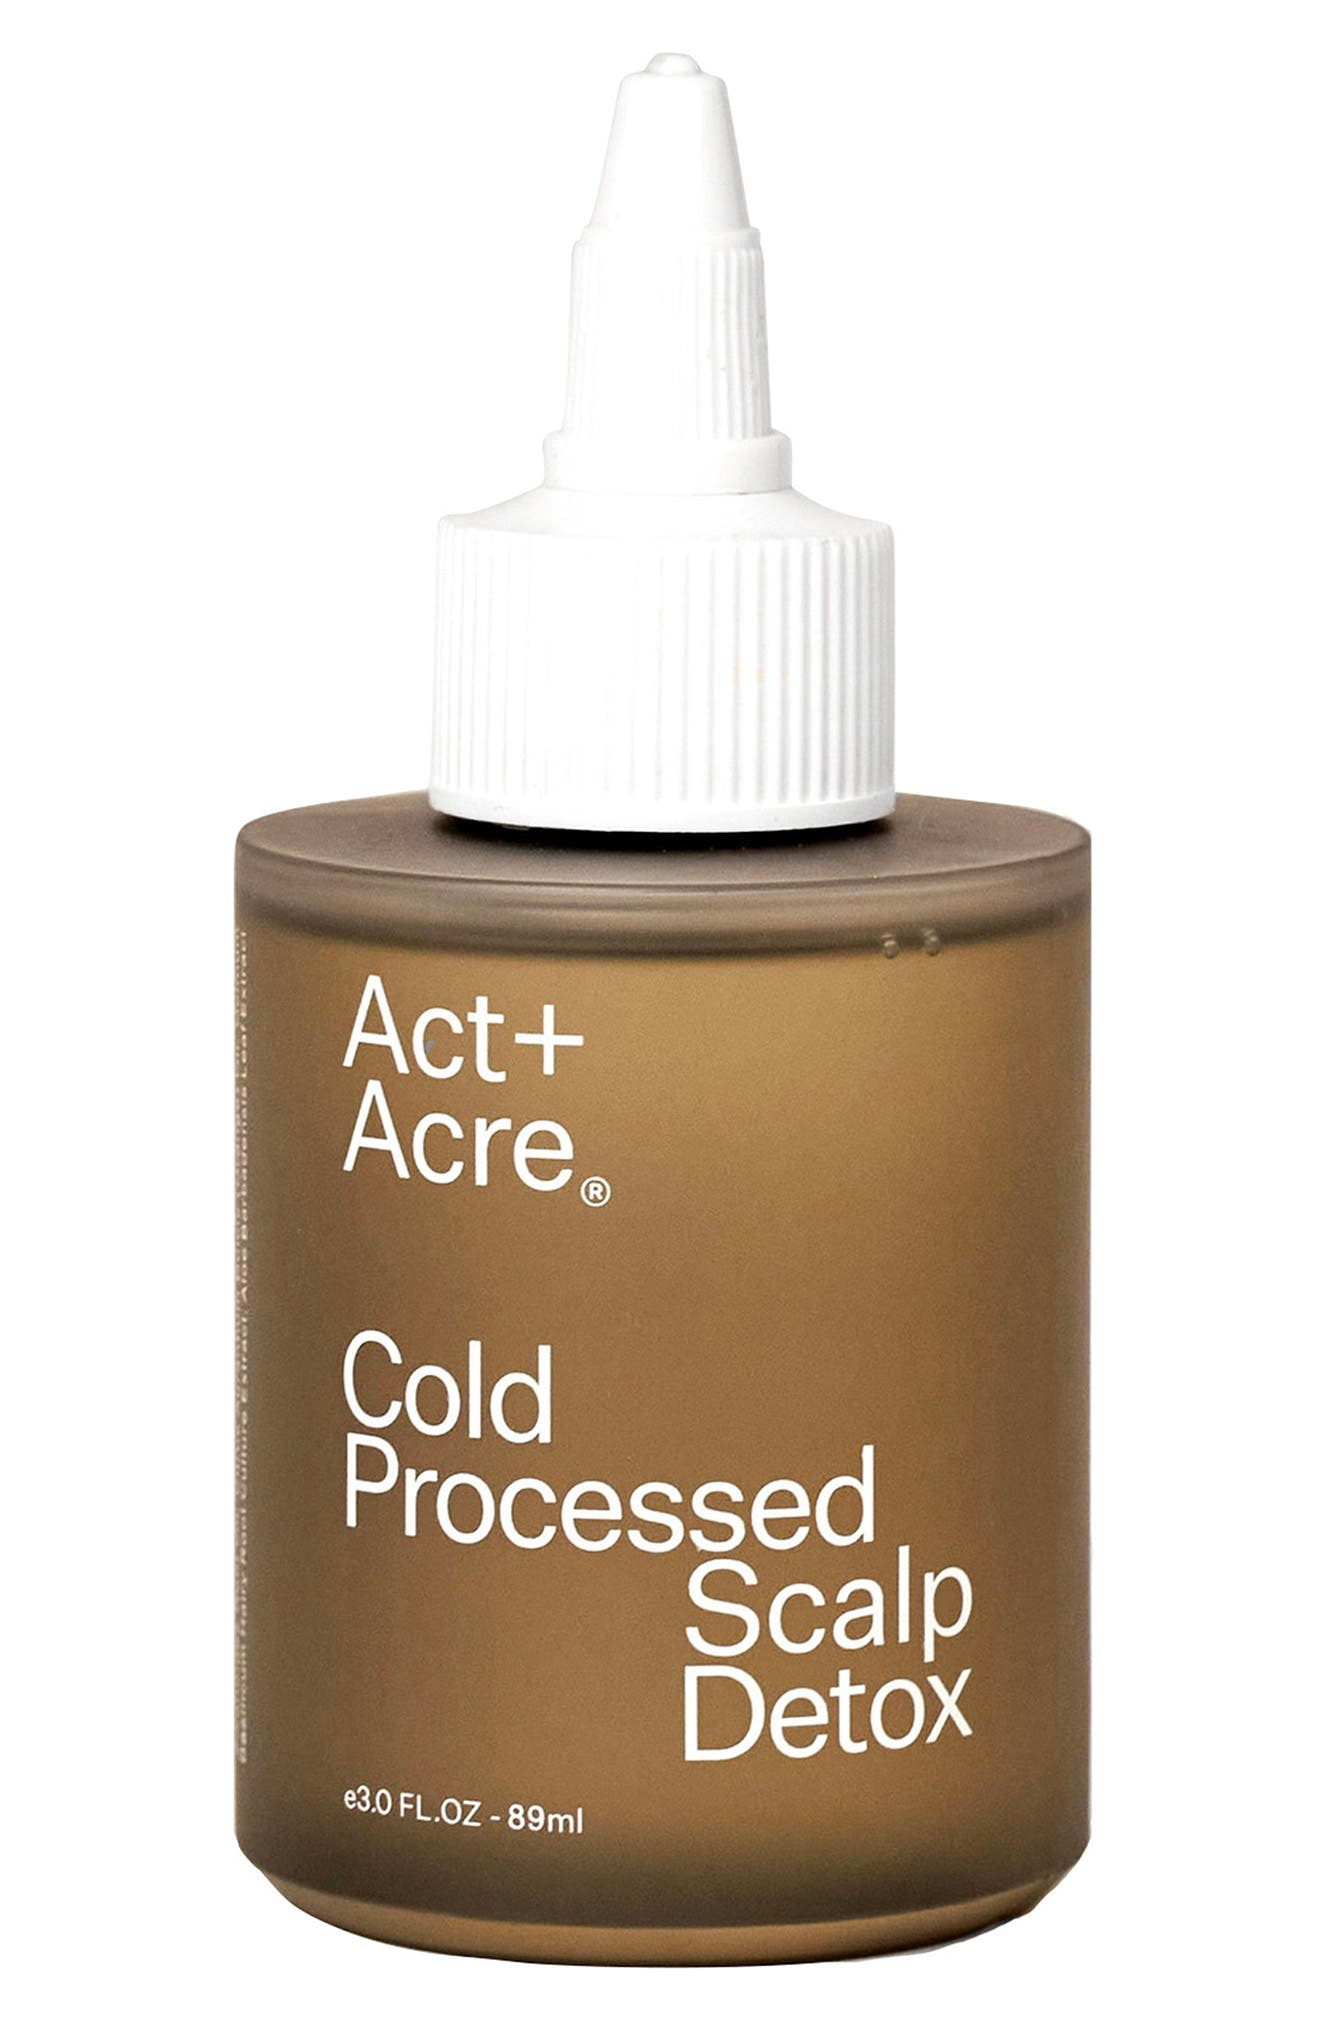 Act+Acre Cold Processed Scalp Detox at Nordstrom